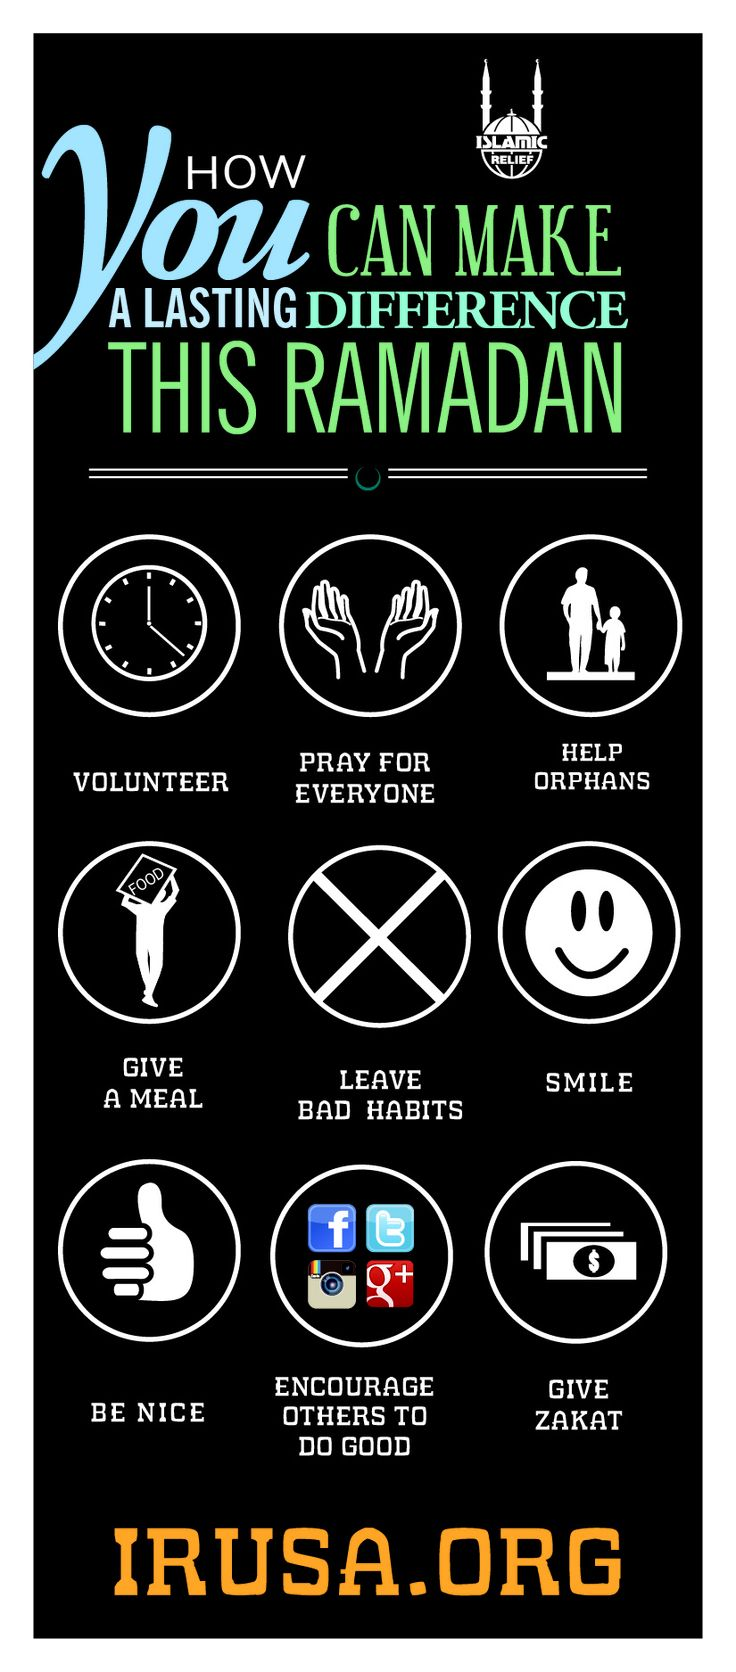 How you can make a lasting difference this Ramadan:  -Volunteer - Pray for everyone -Help orphans -Give a meal -Leave bad habits -:) -Be nice -Encourage others to do good -Give Zakat